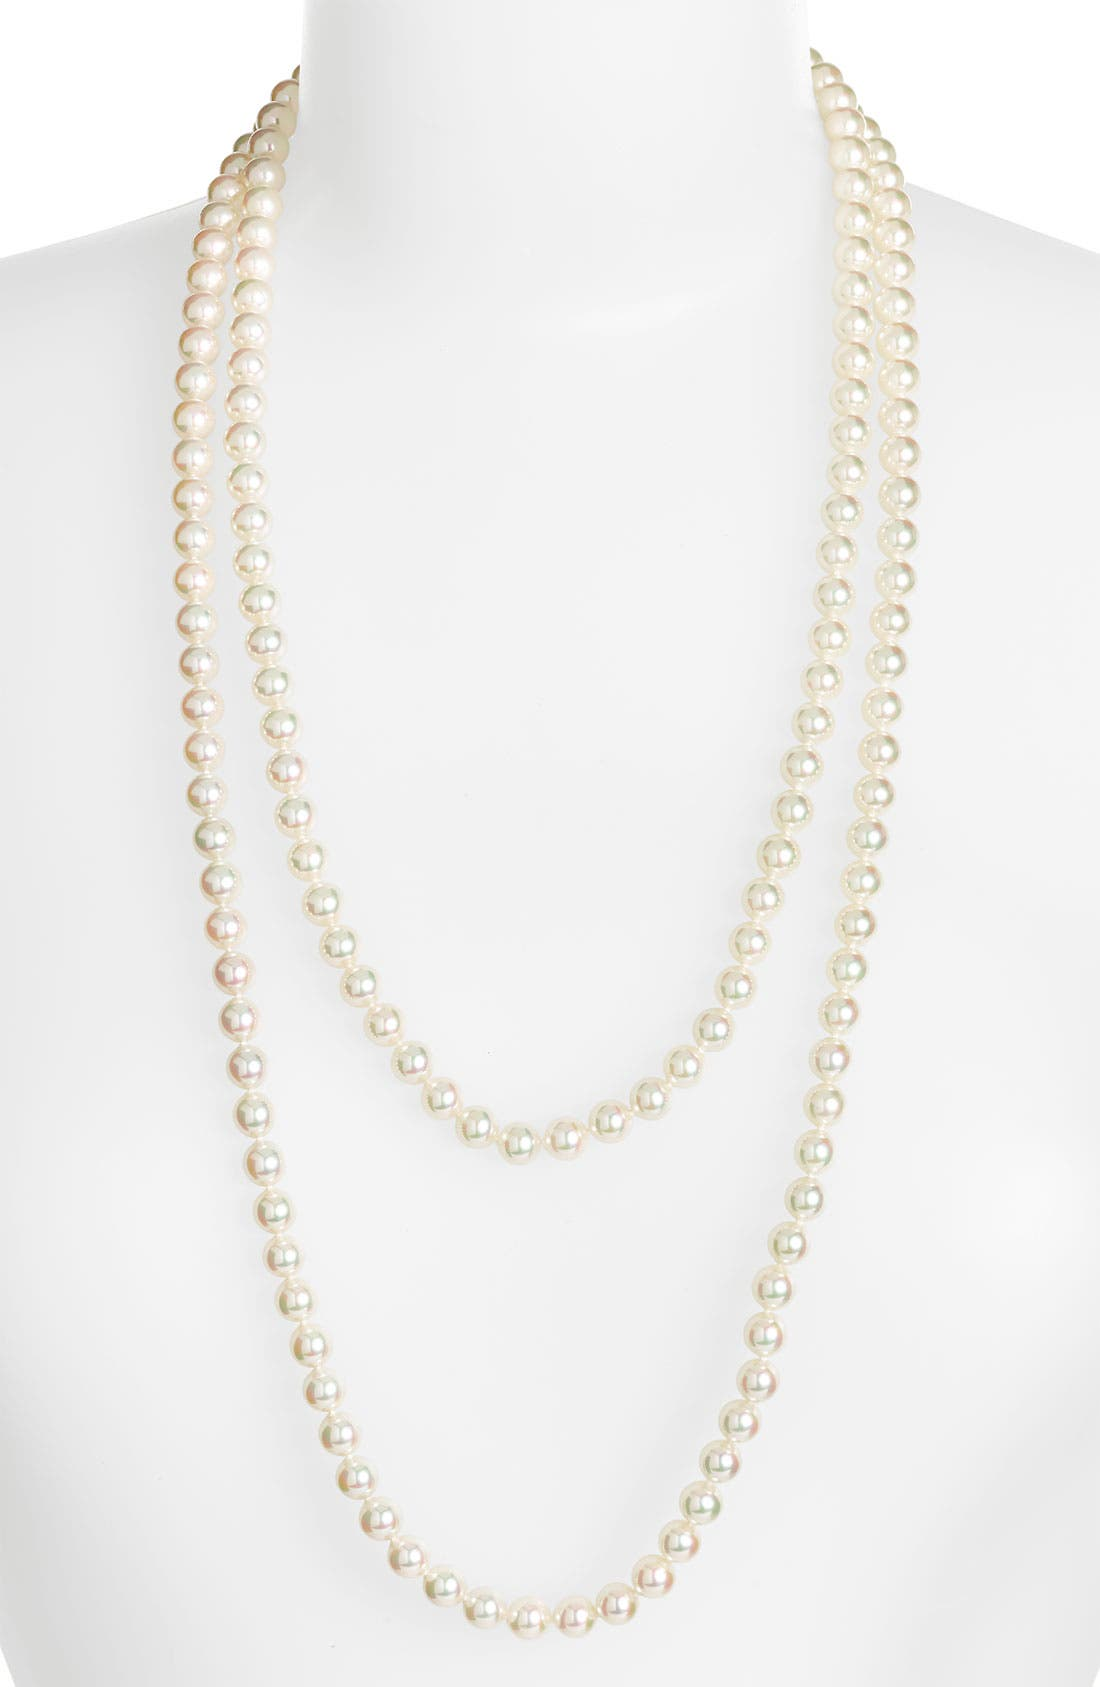 7mm Round Pearl Endless Rope Necklace,                         Main,                         color, White/ Silver